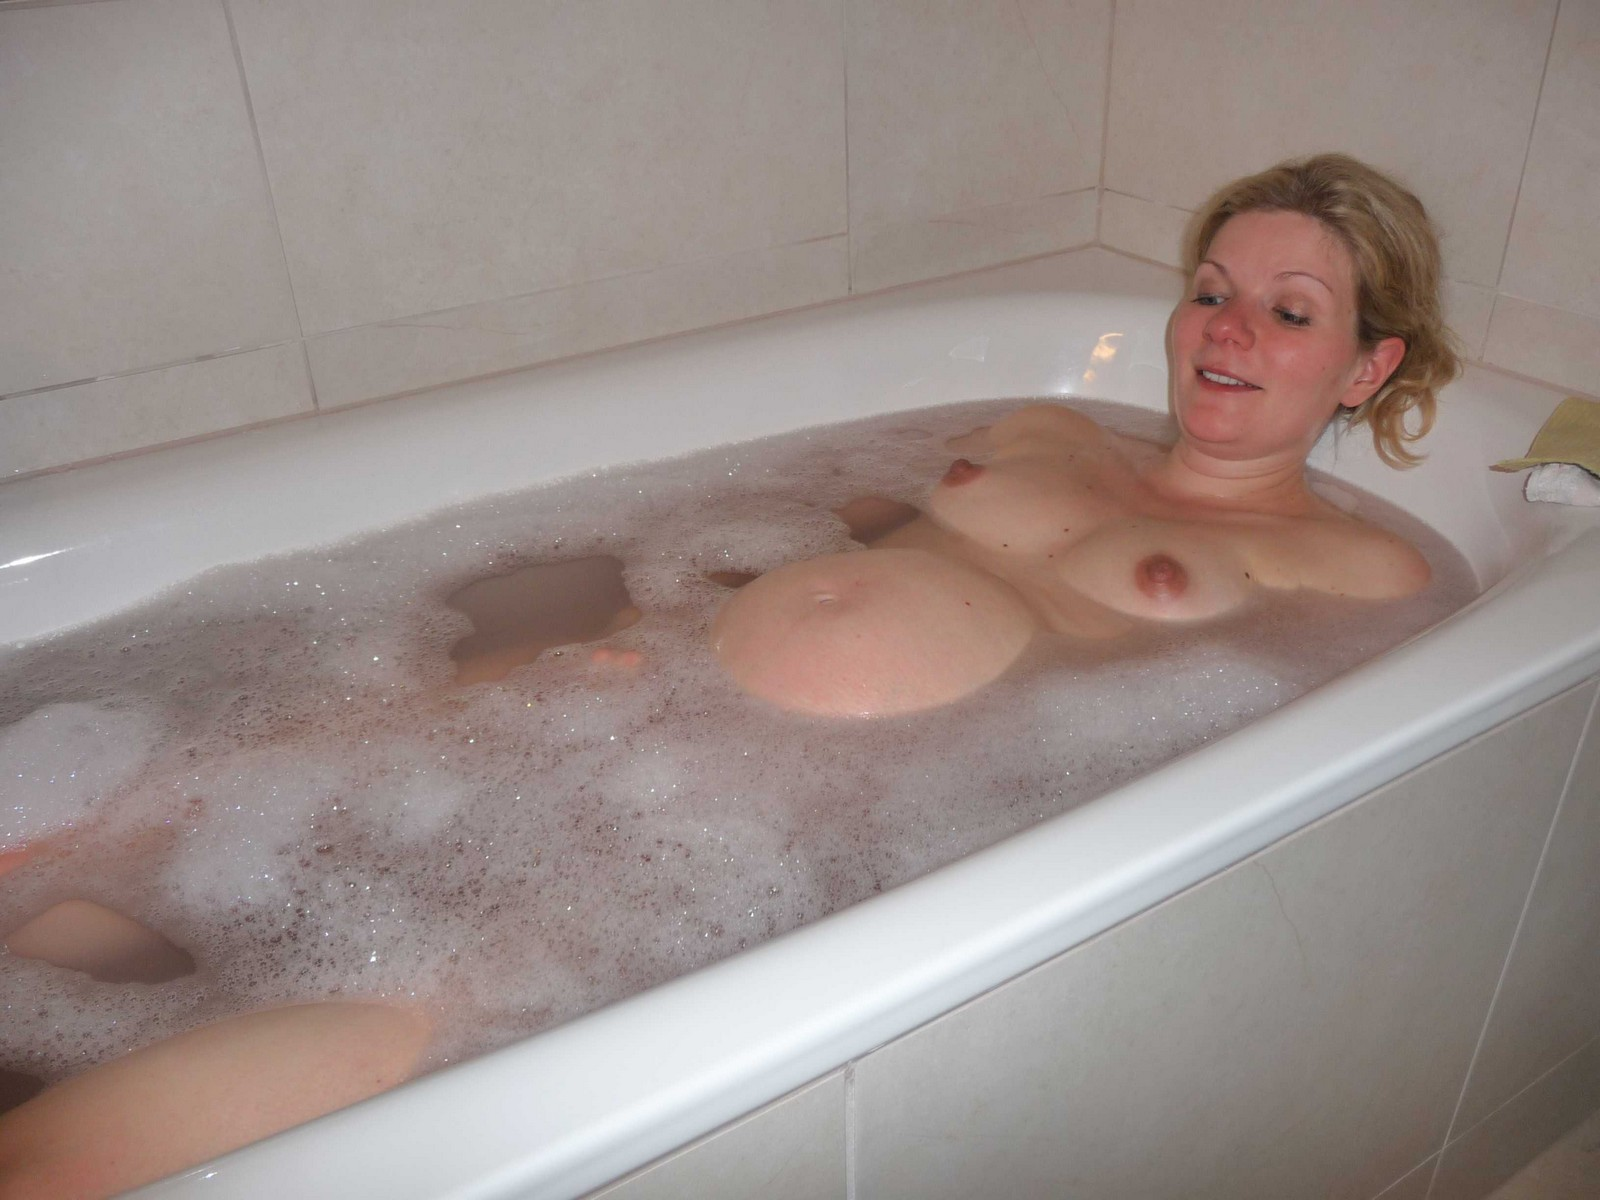 Pregnant wife nude bathtub